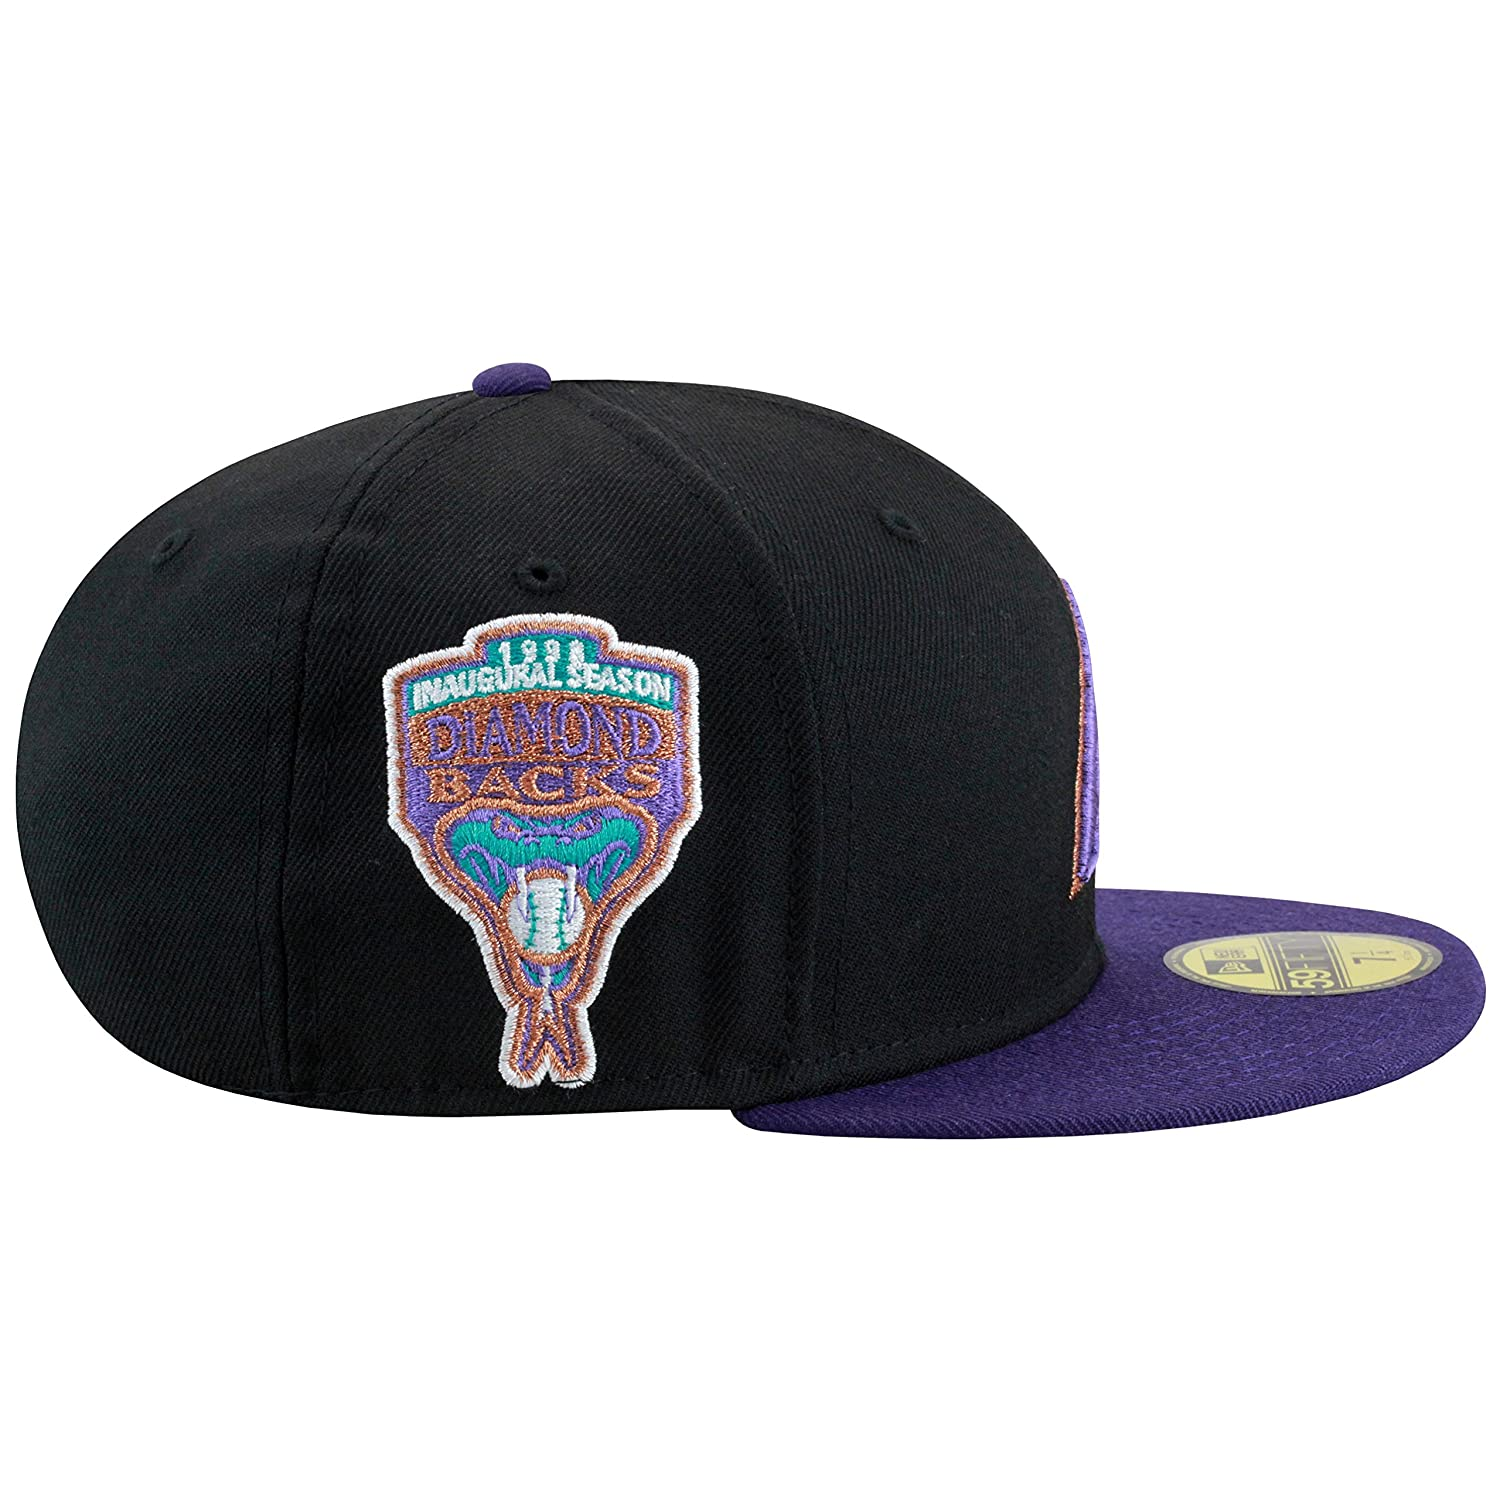 New Era Arizona Diamondbacks Fitted Hat Cap BLACK  Purple  1998 Inaugural  Season Christmas Supplies 4edd568ca44